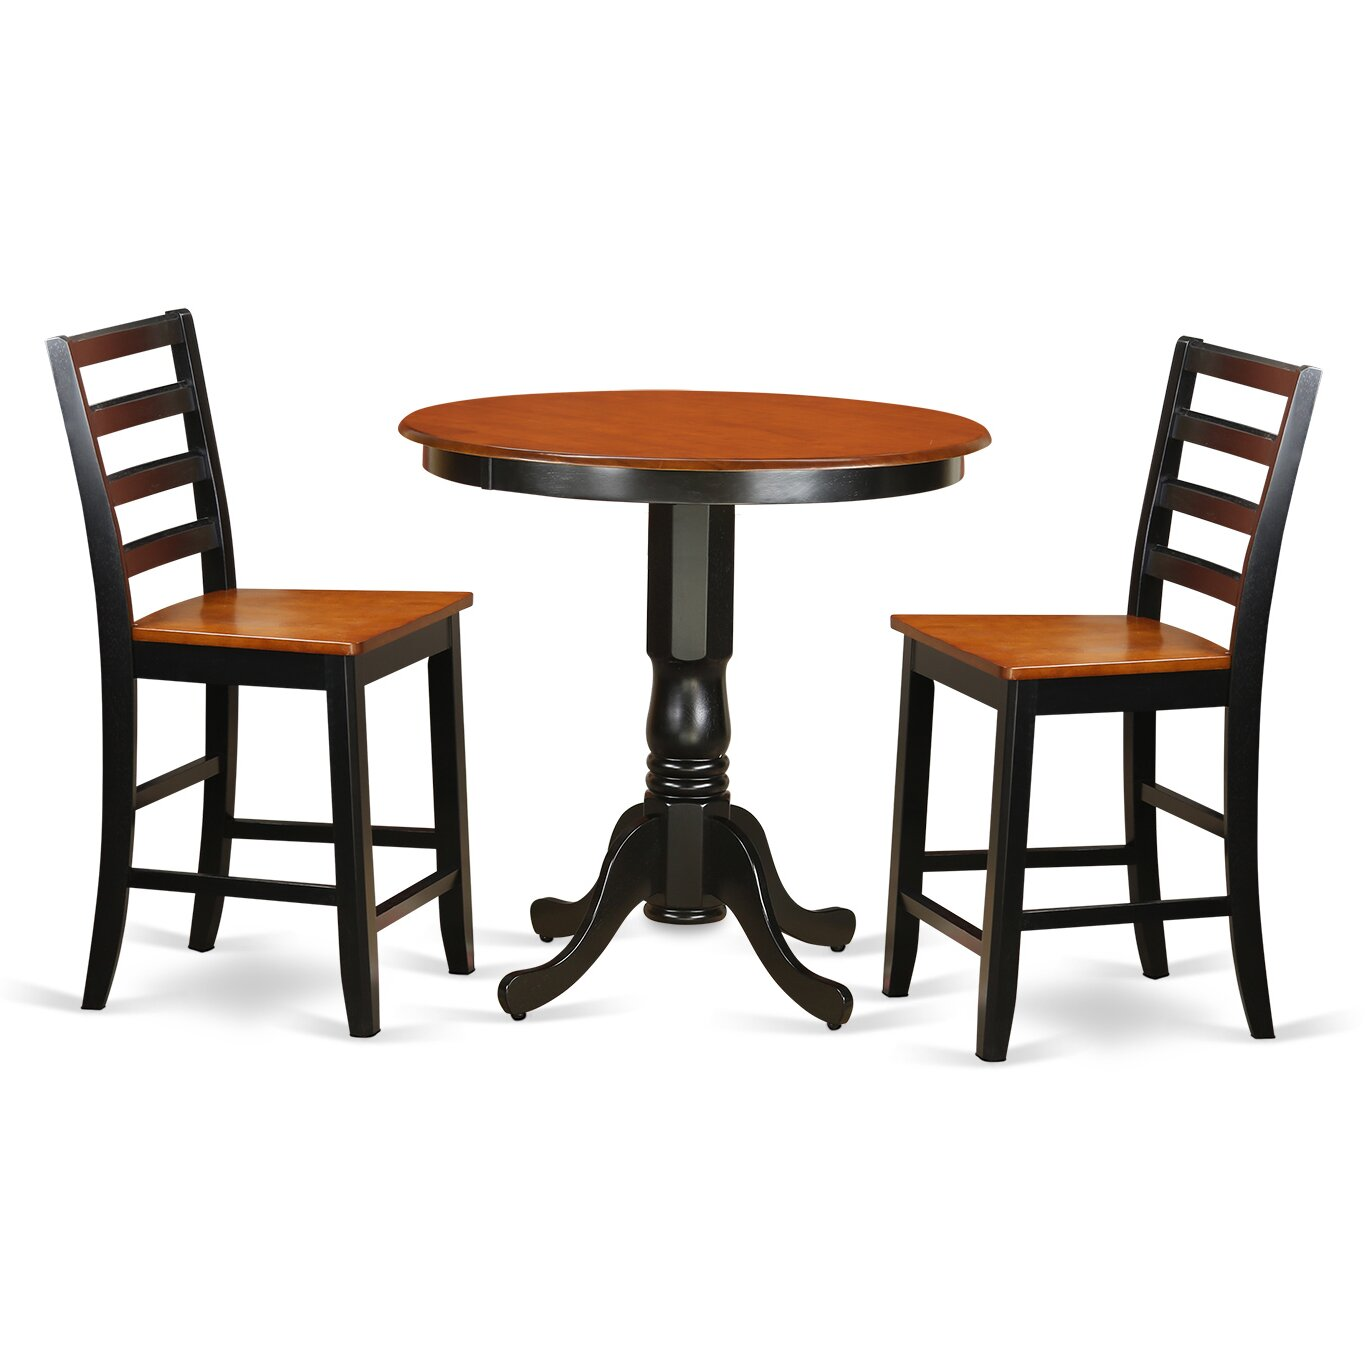 wooden importers jackson 3 piece counter height pub table set wayfair. Black Bedroom Furniture Sets. Home Design Ideas